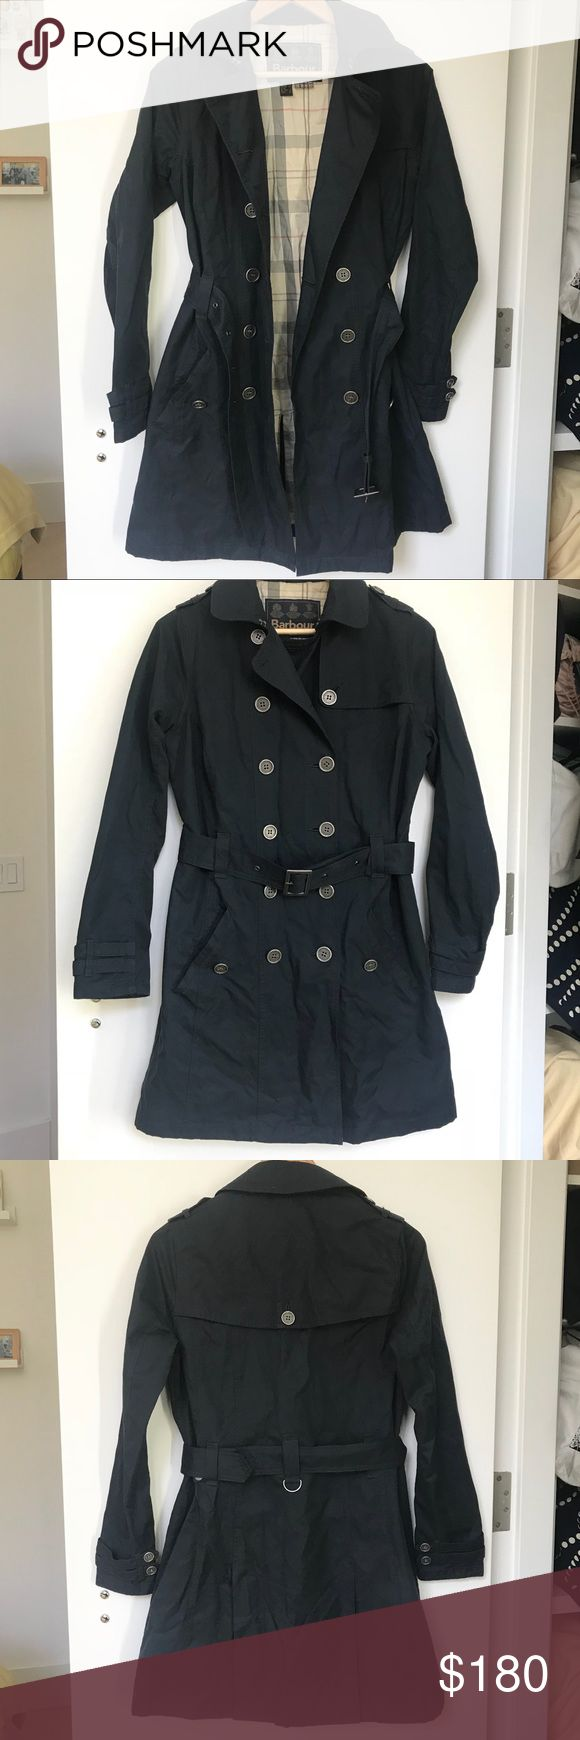 Barbour Navy Button Trench Coat Beautiful Jacket, lovely details in metal buttons, inner jacket pocket and belt straps. Collar has a clasp for colder weather as well. The material is nice and lightweight but still sturdy. It's slightly water resistant, but not a raincoat. Barbour Jackets & Coats Trench Coats